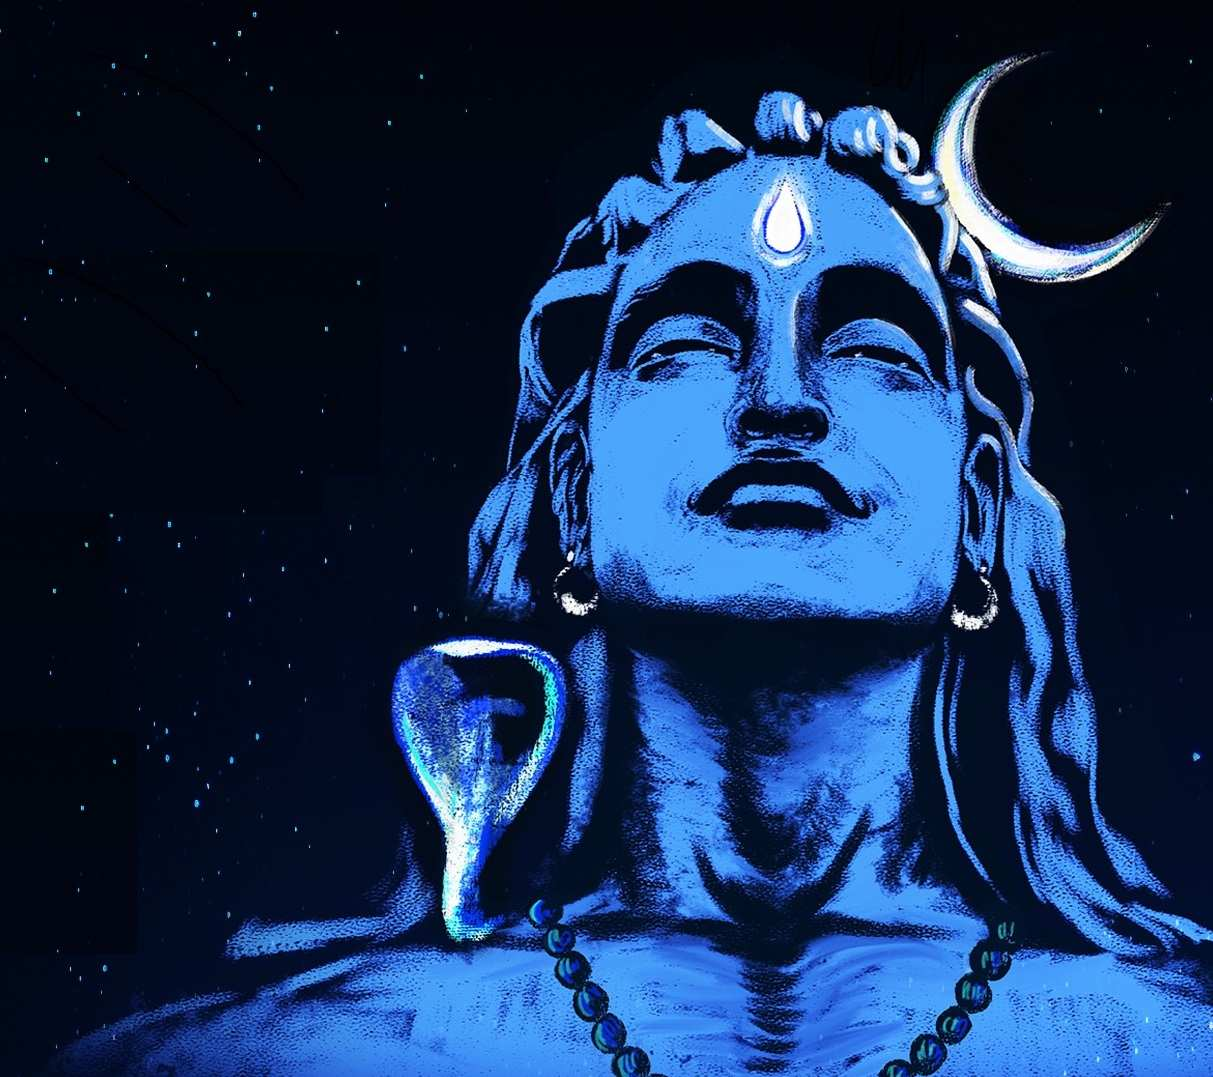 Shiva - The Adiyogi illustration